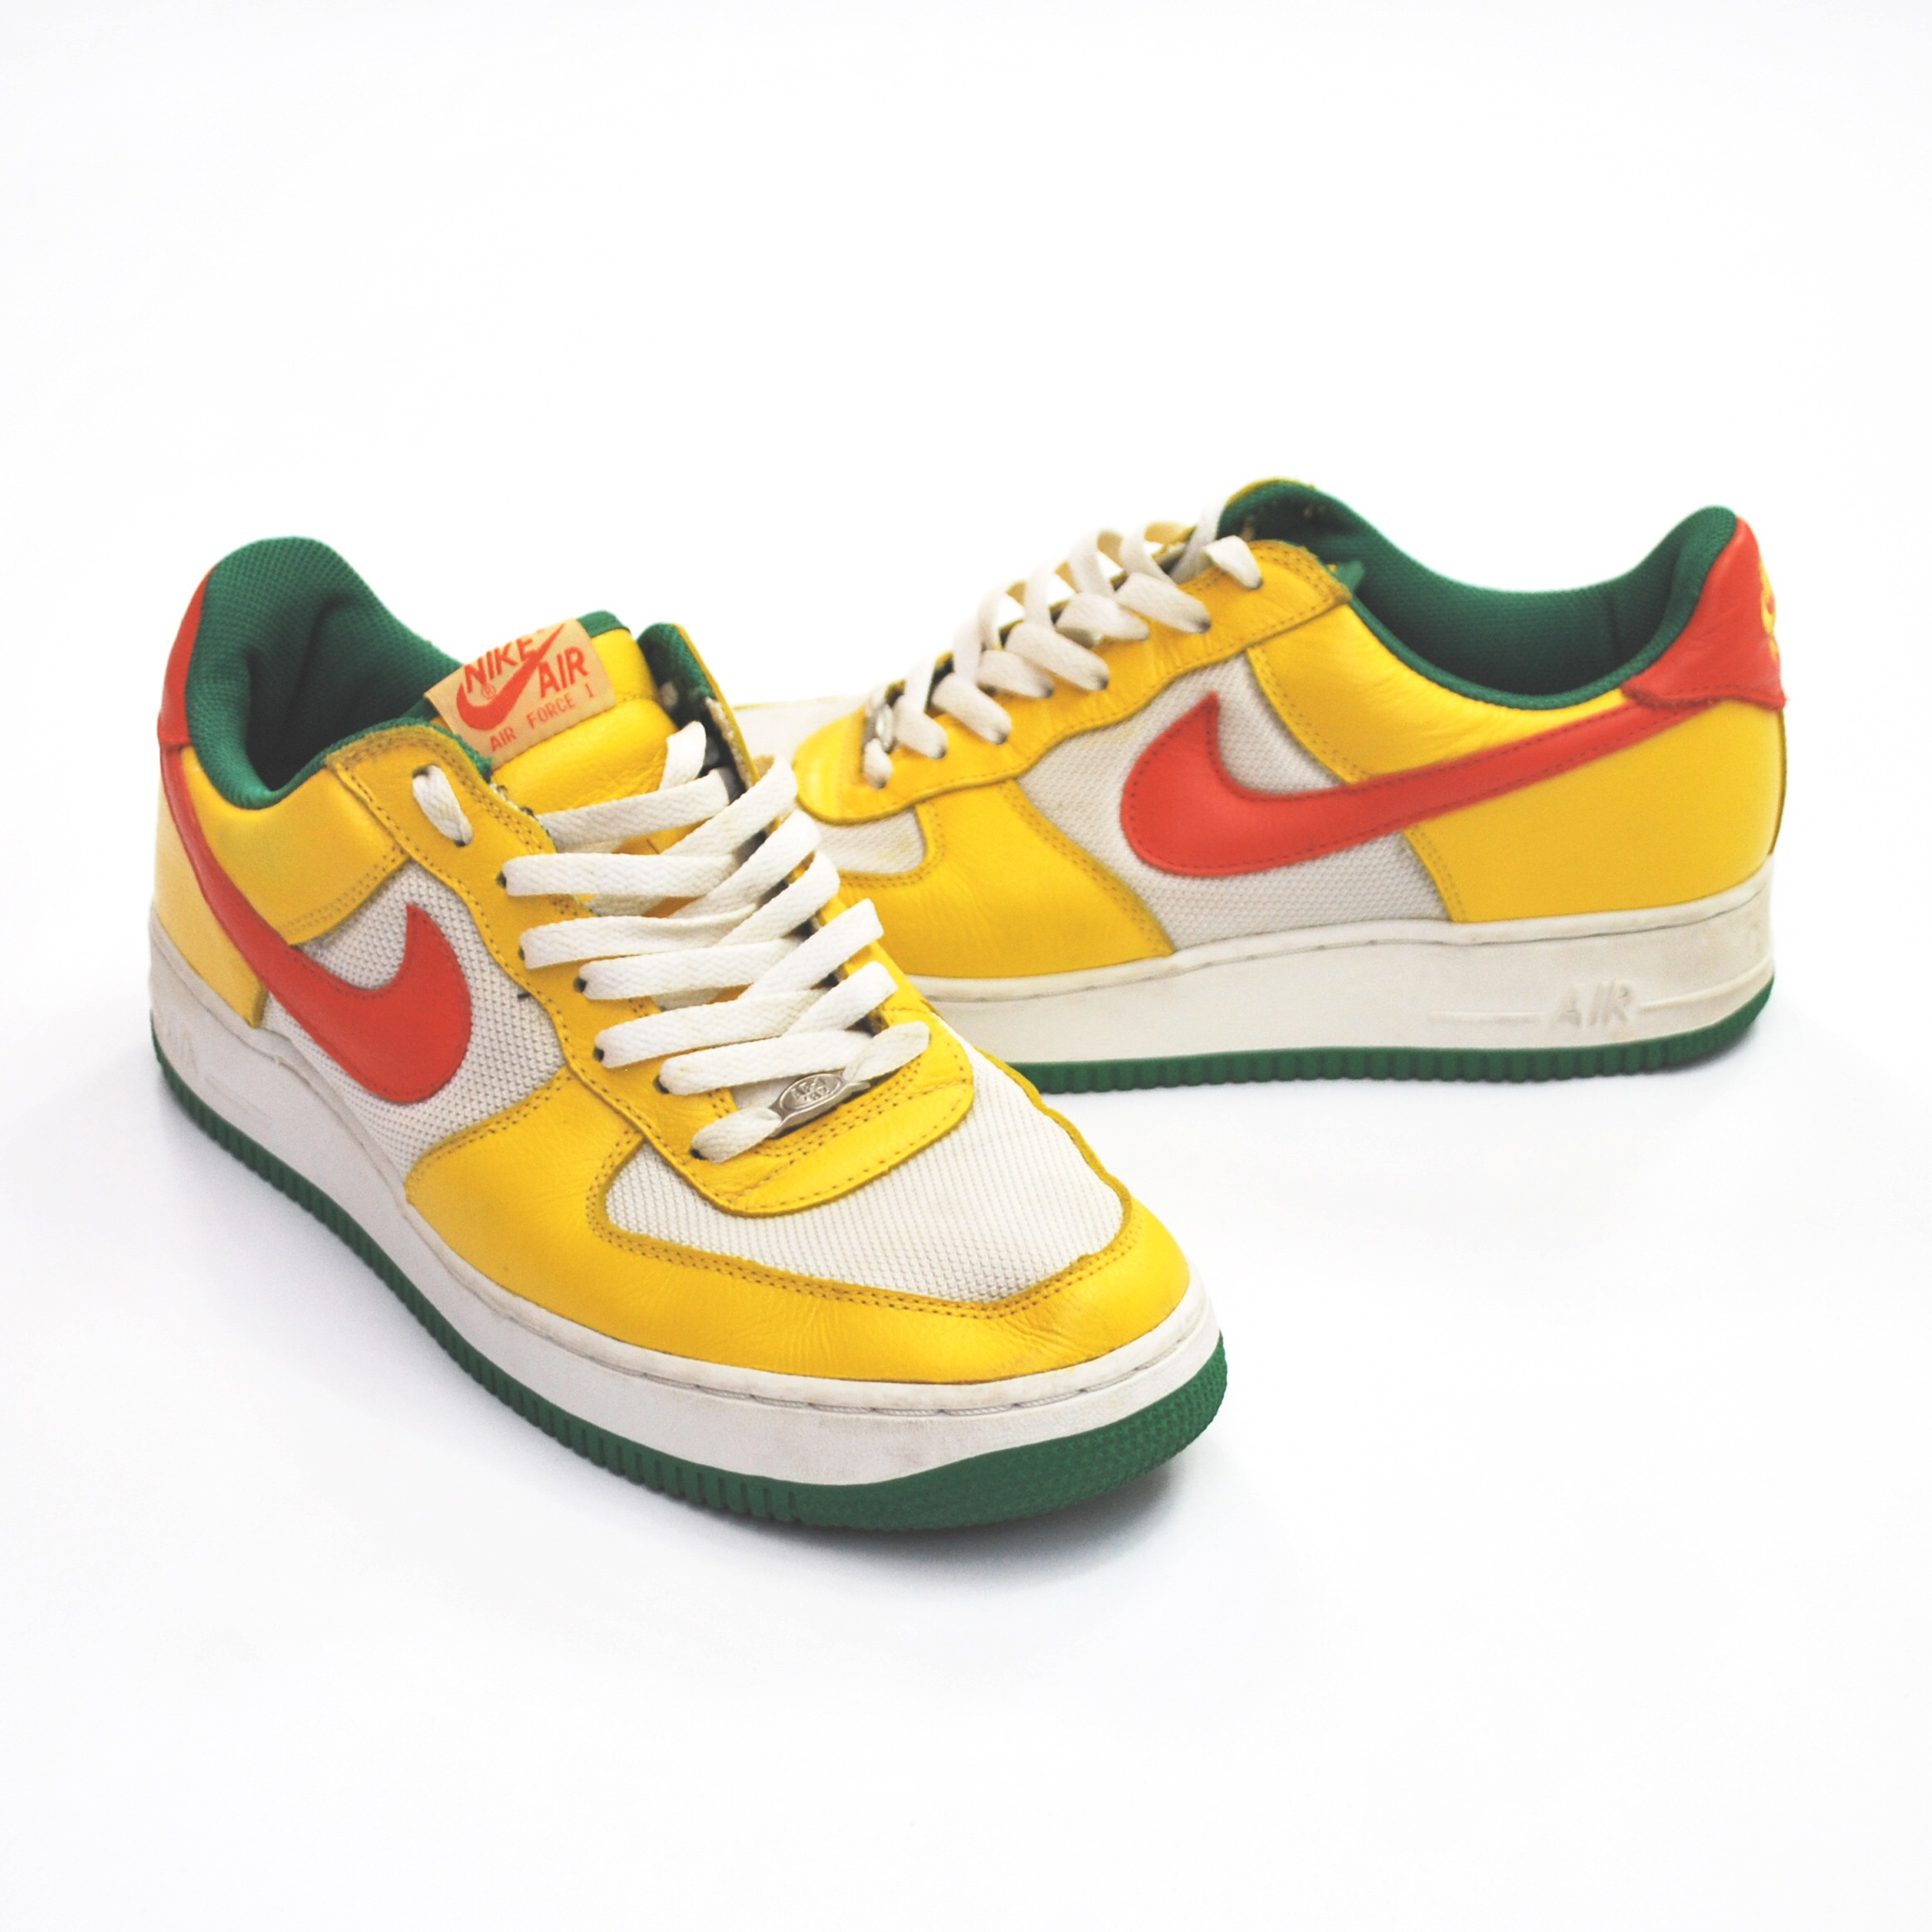 """Nike Air Force 1 (2003) """"Notting Hill Carnival"""" Depop"""